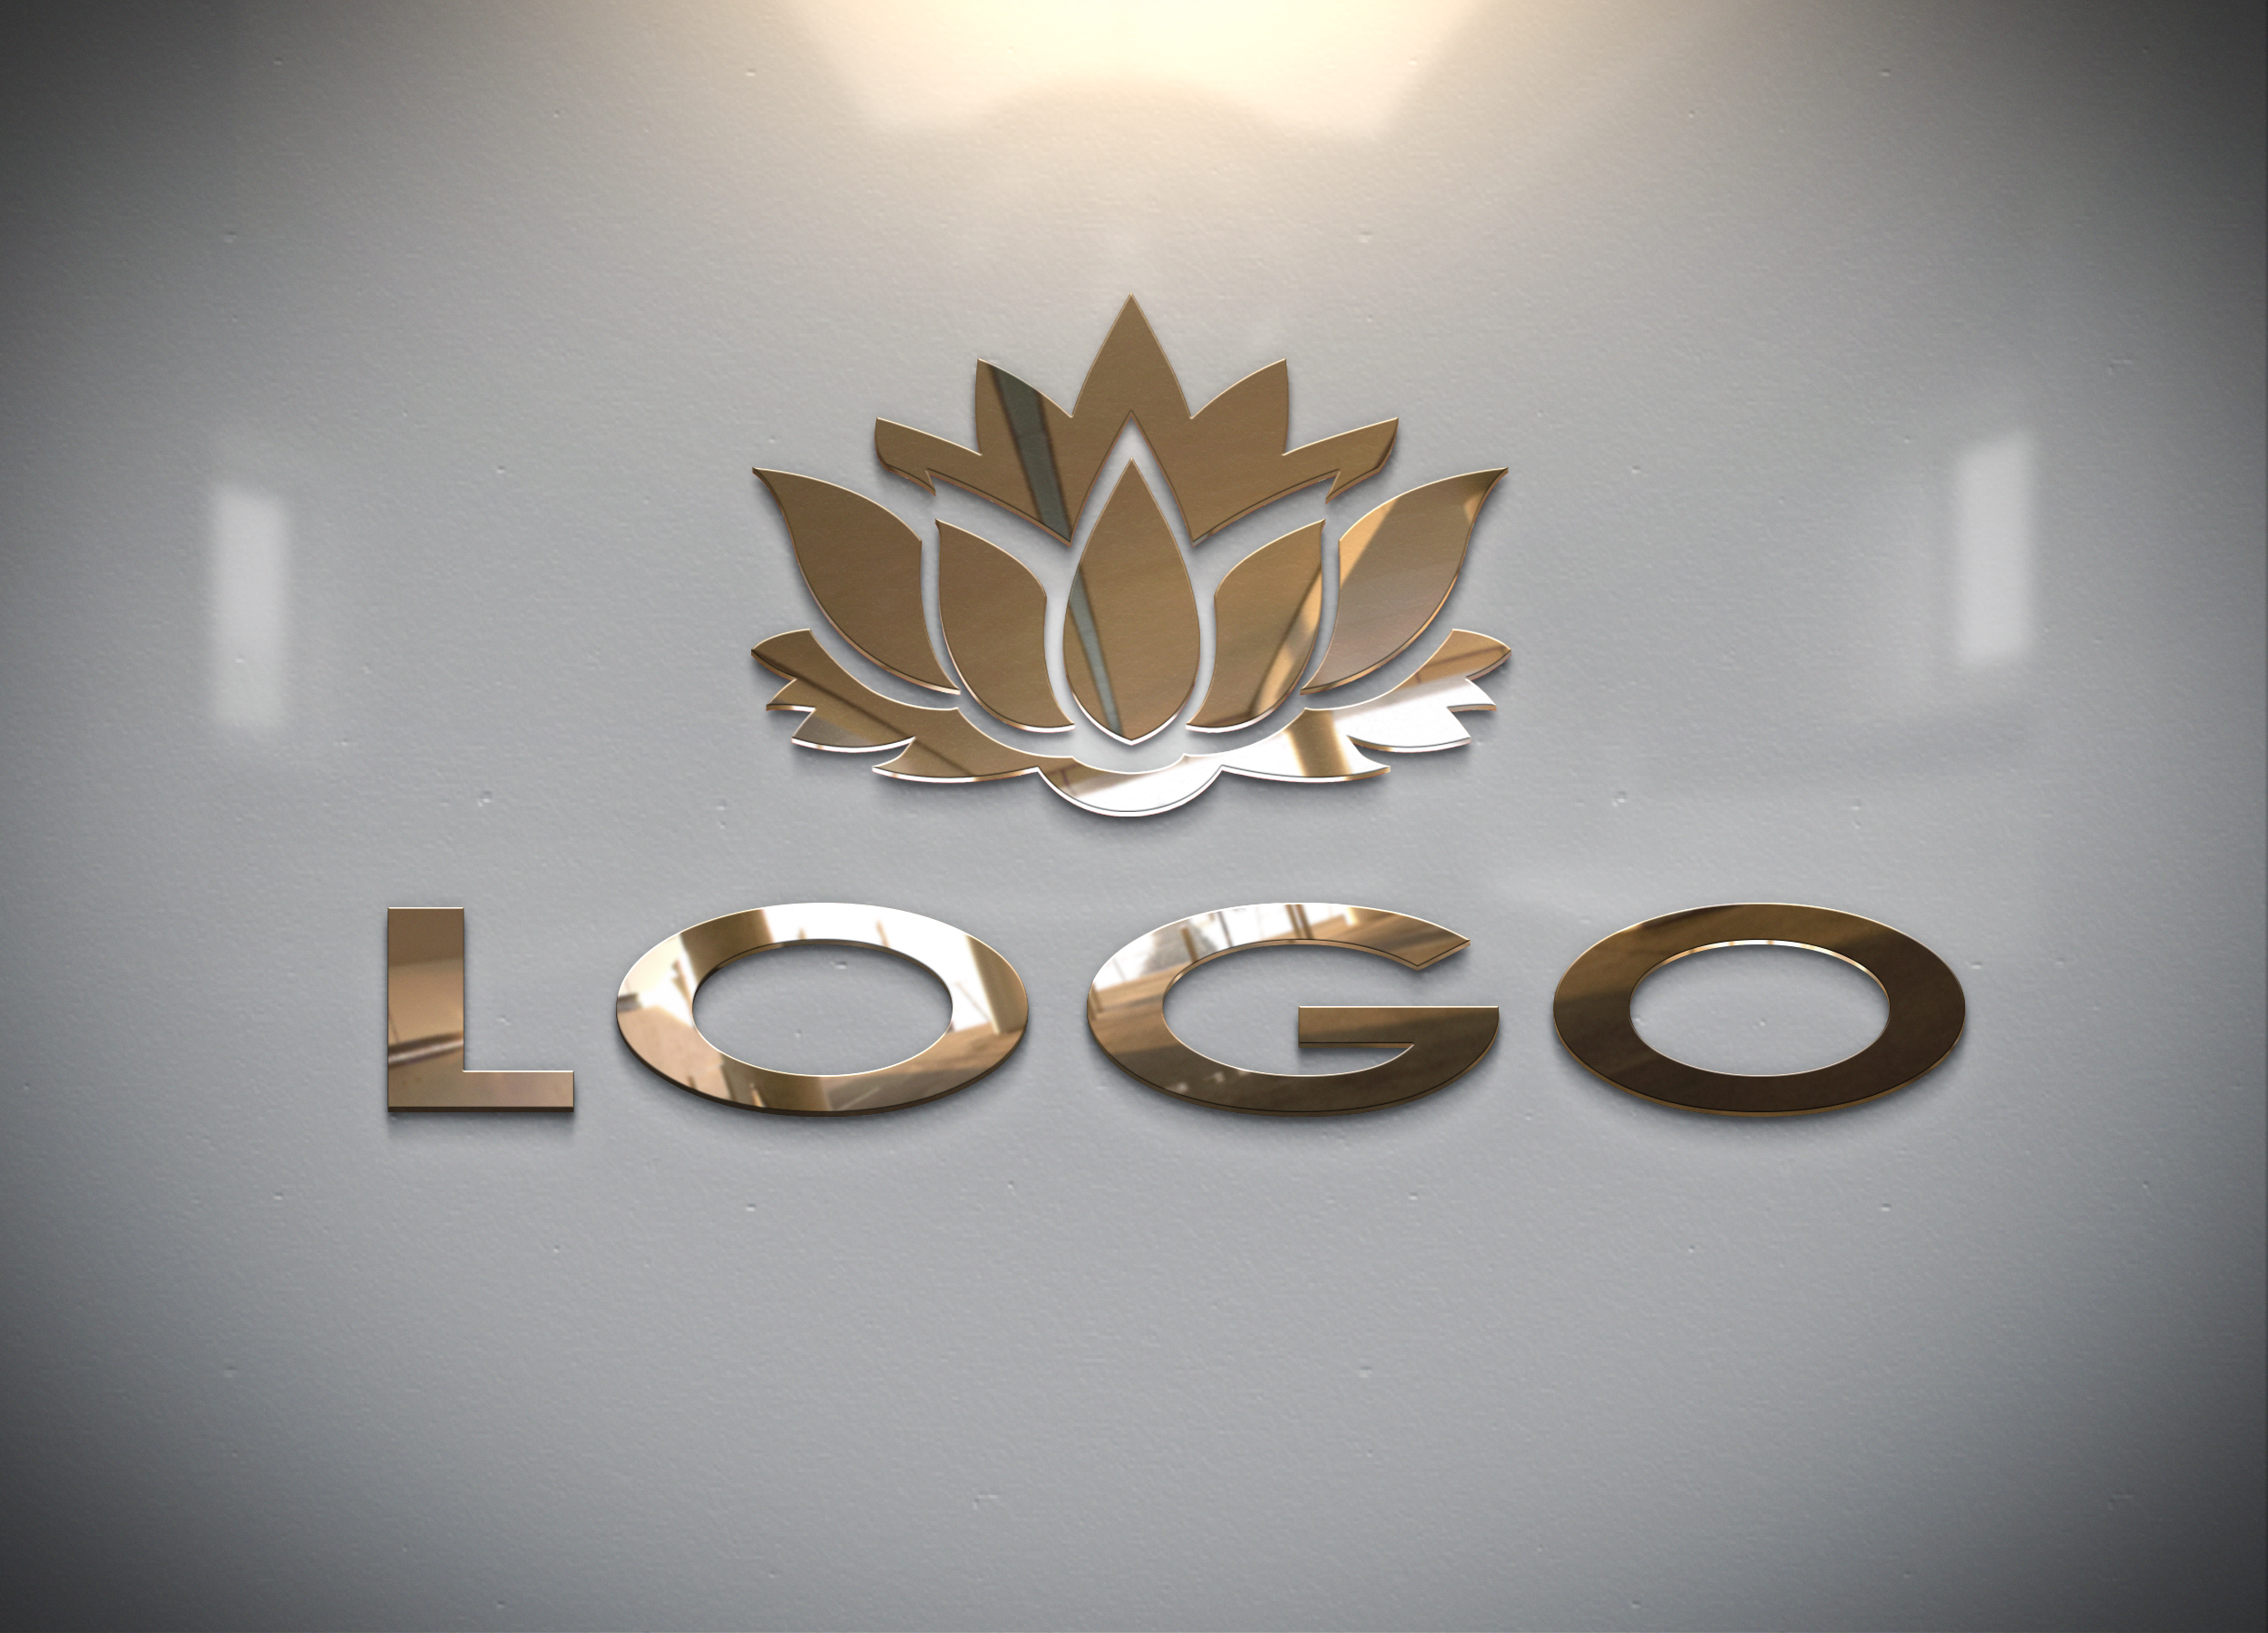 fast convert your logo into 3D MockUp design - sample no5